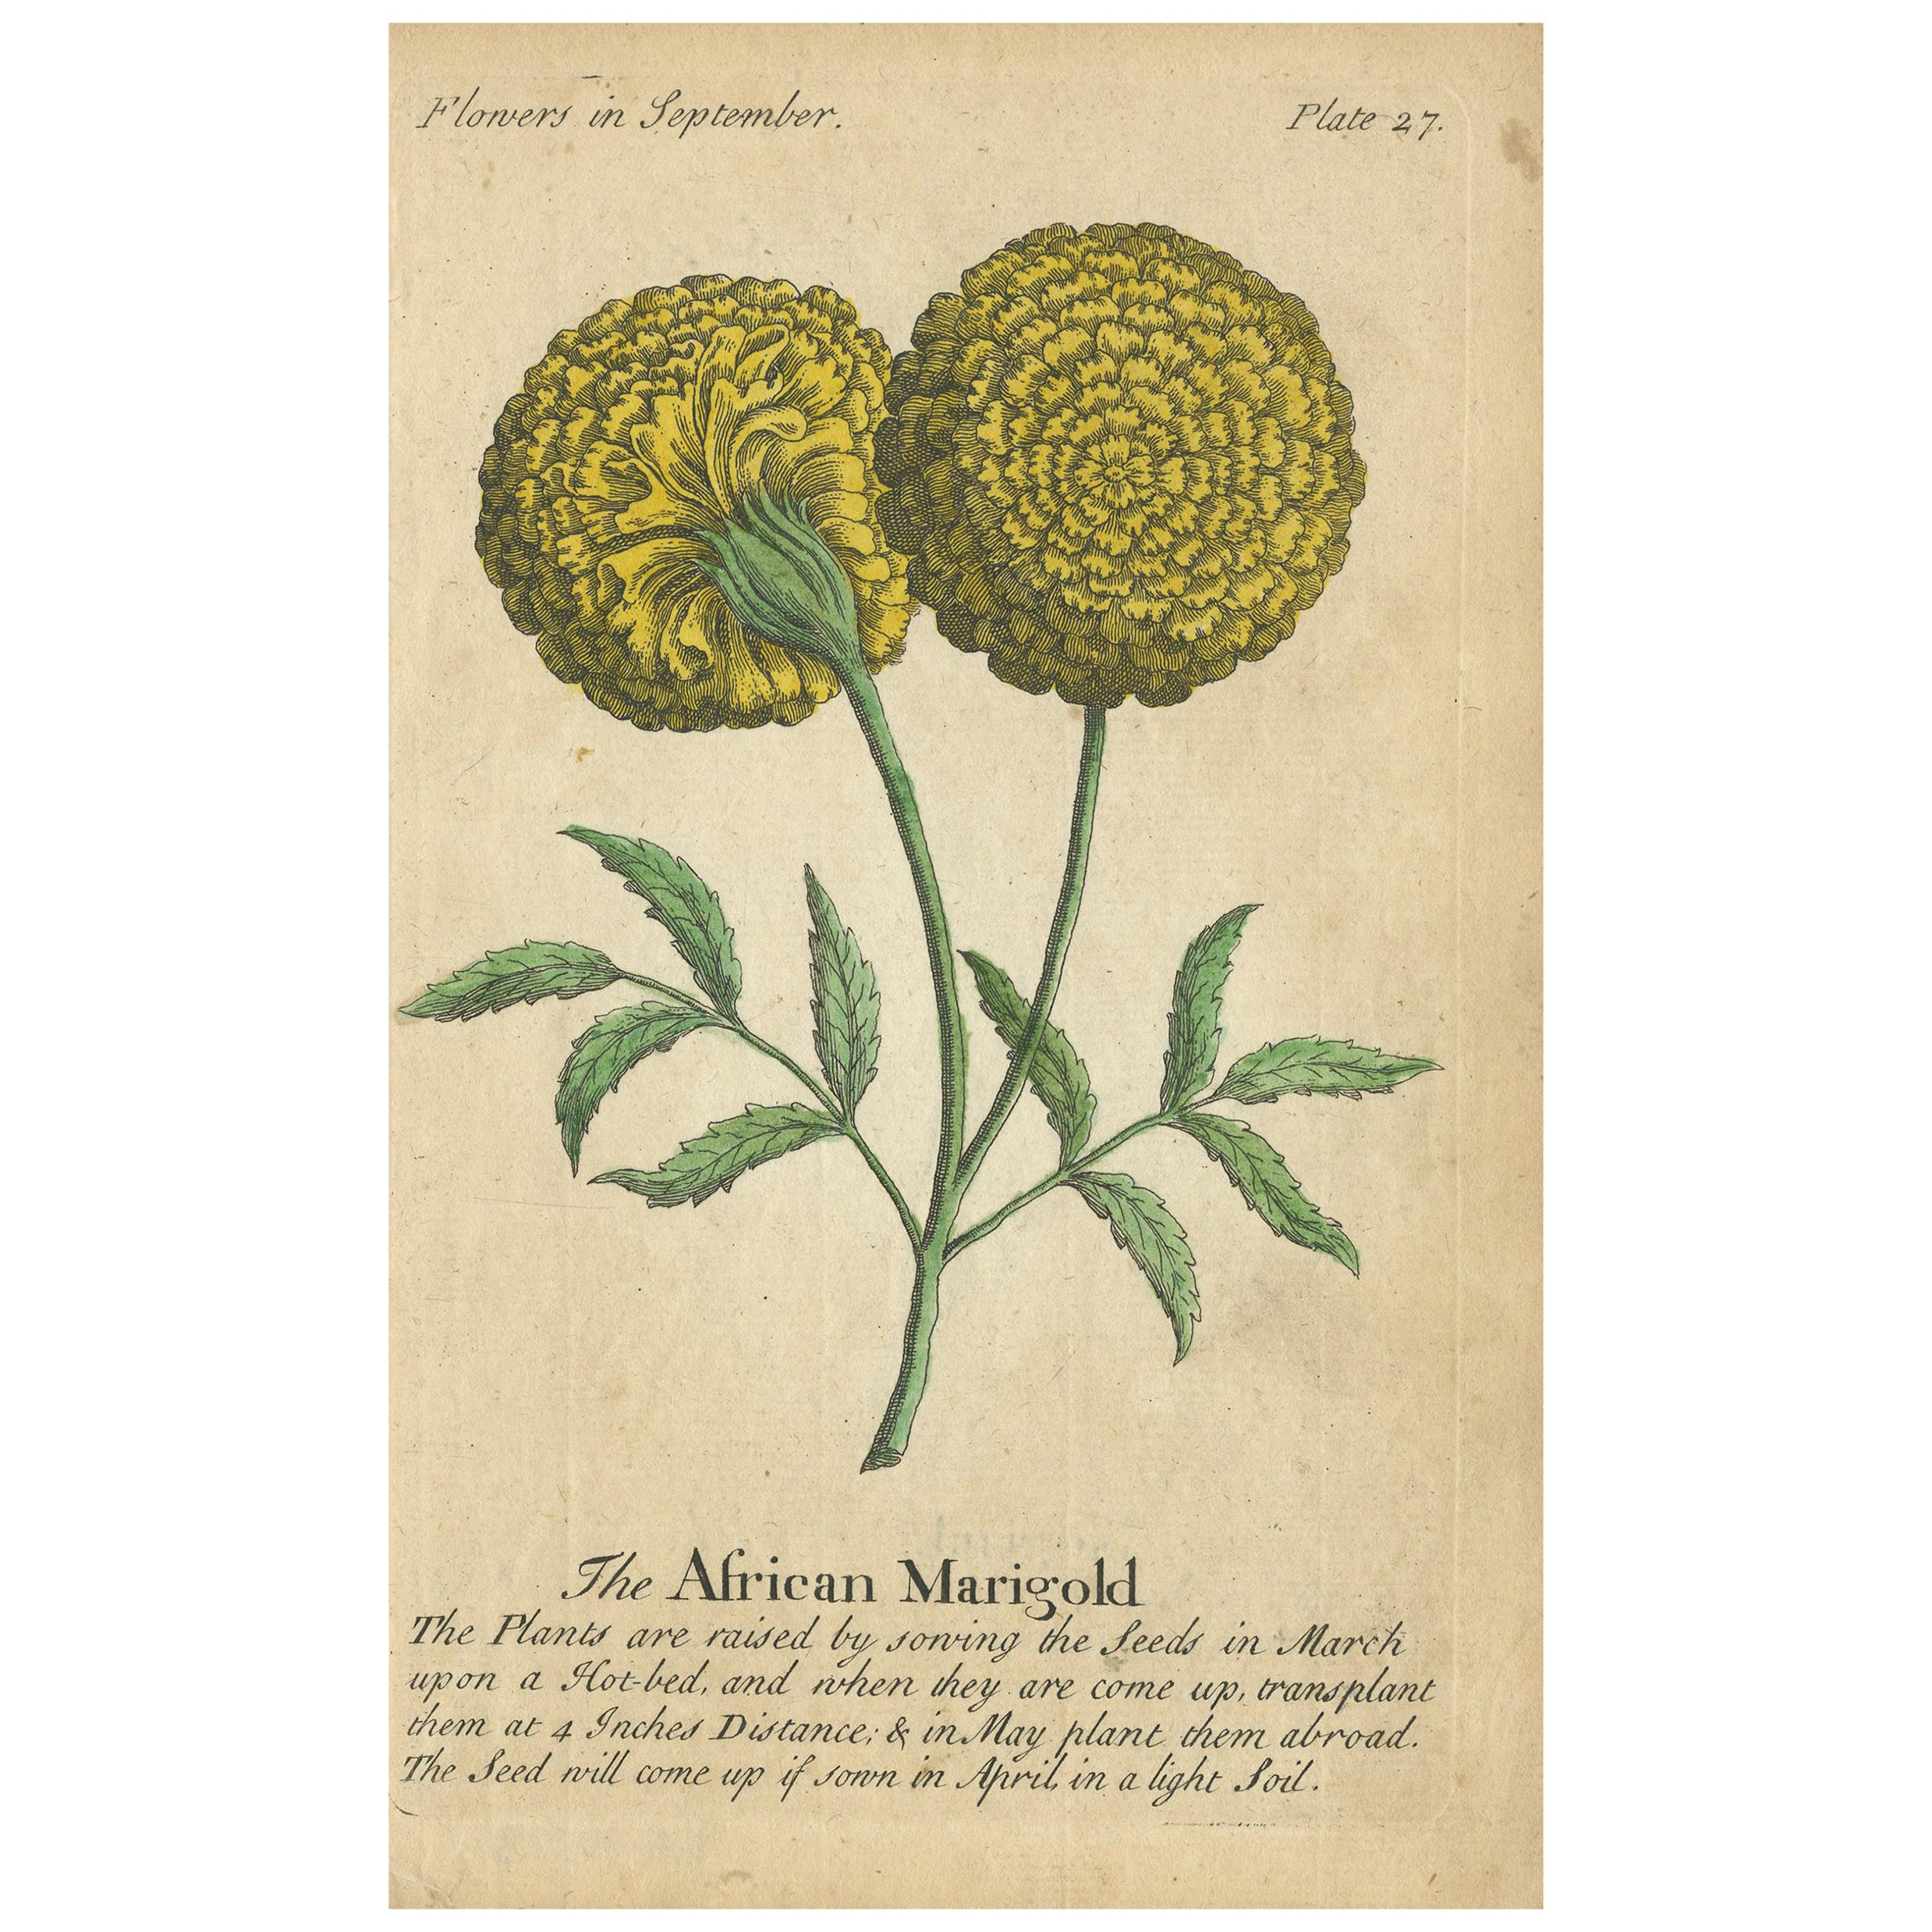 Antique Print of the African Marigold Flower, 1747